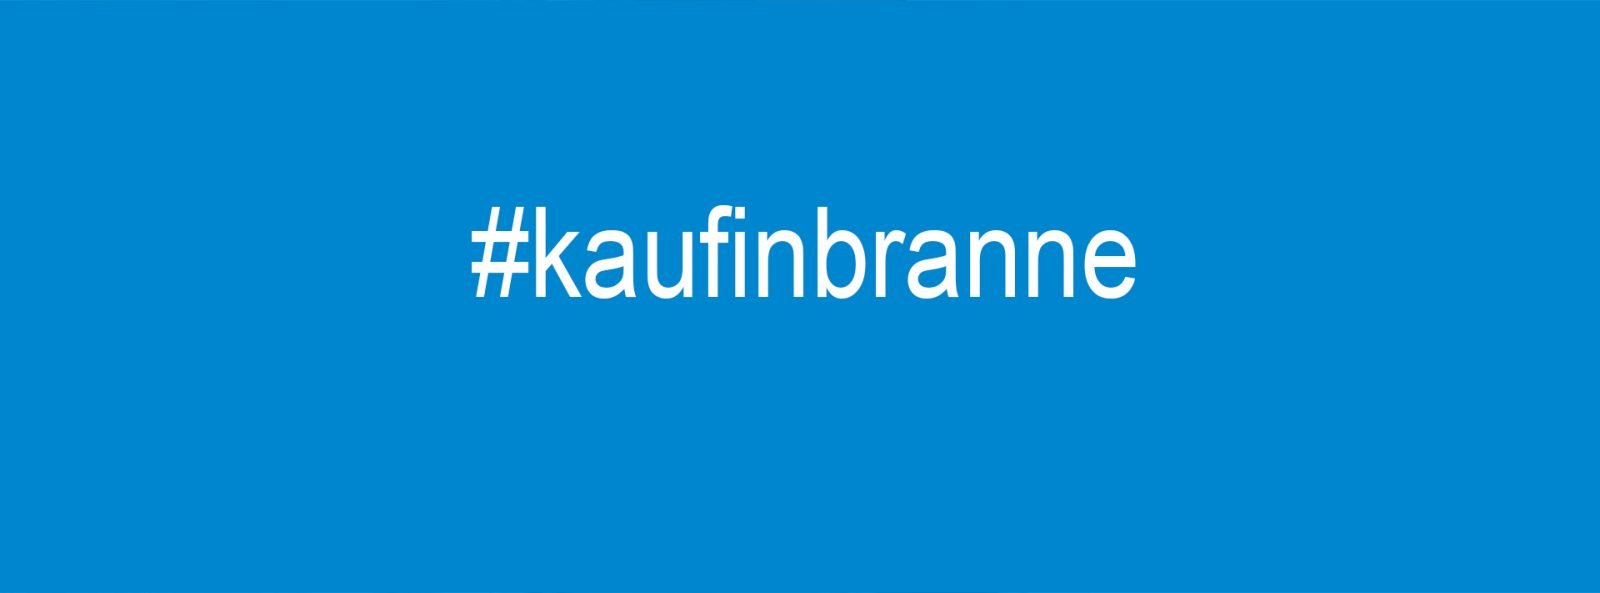 Beflügelt von Lars Schulze | #kaufinbranne | Online-Marketing-Berater | Brandenburg/Havel